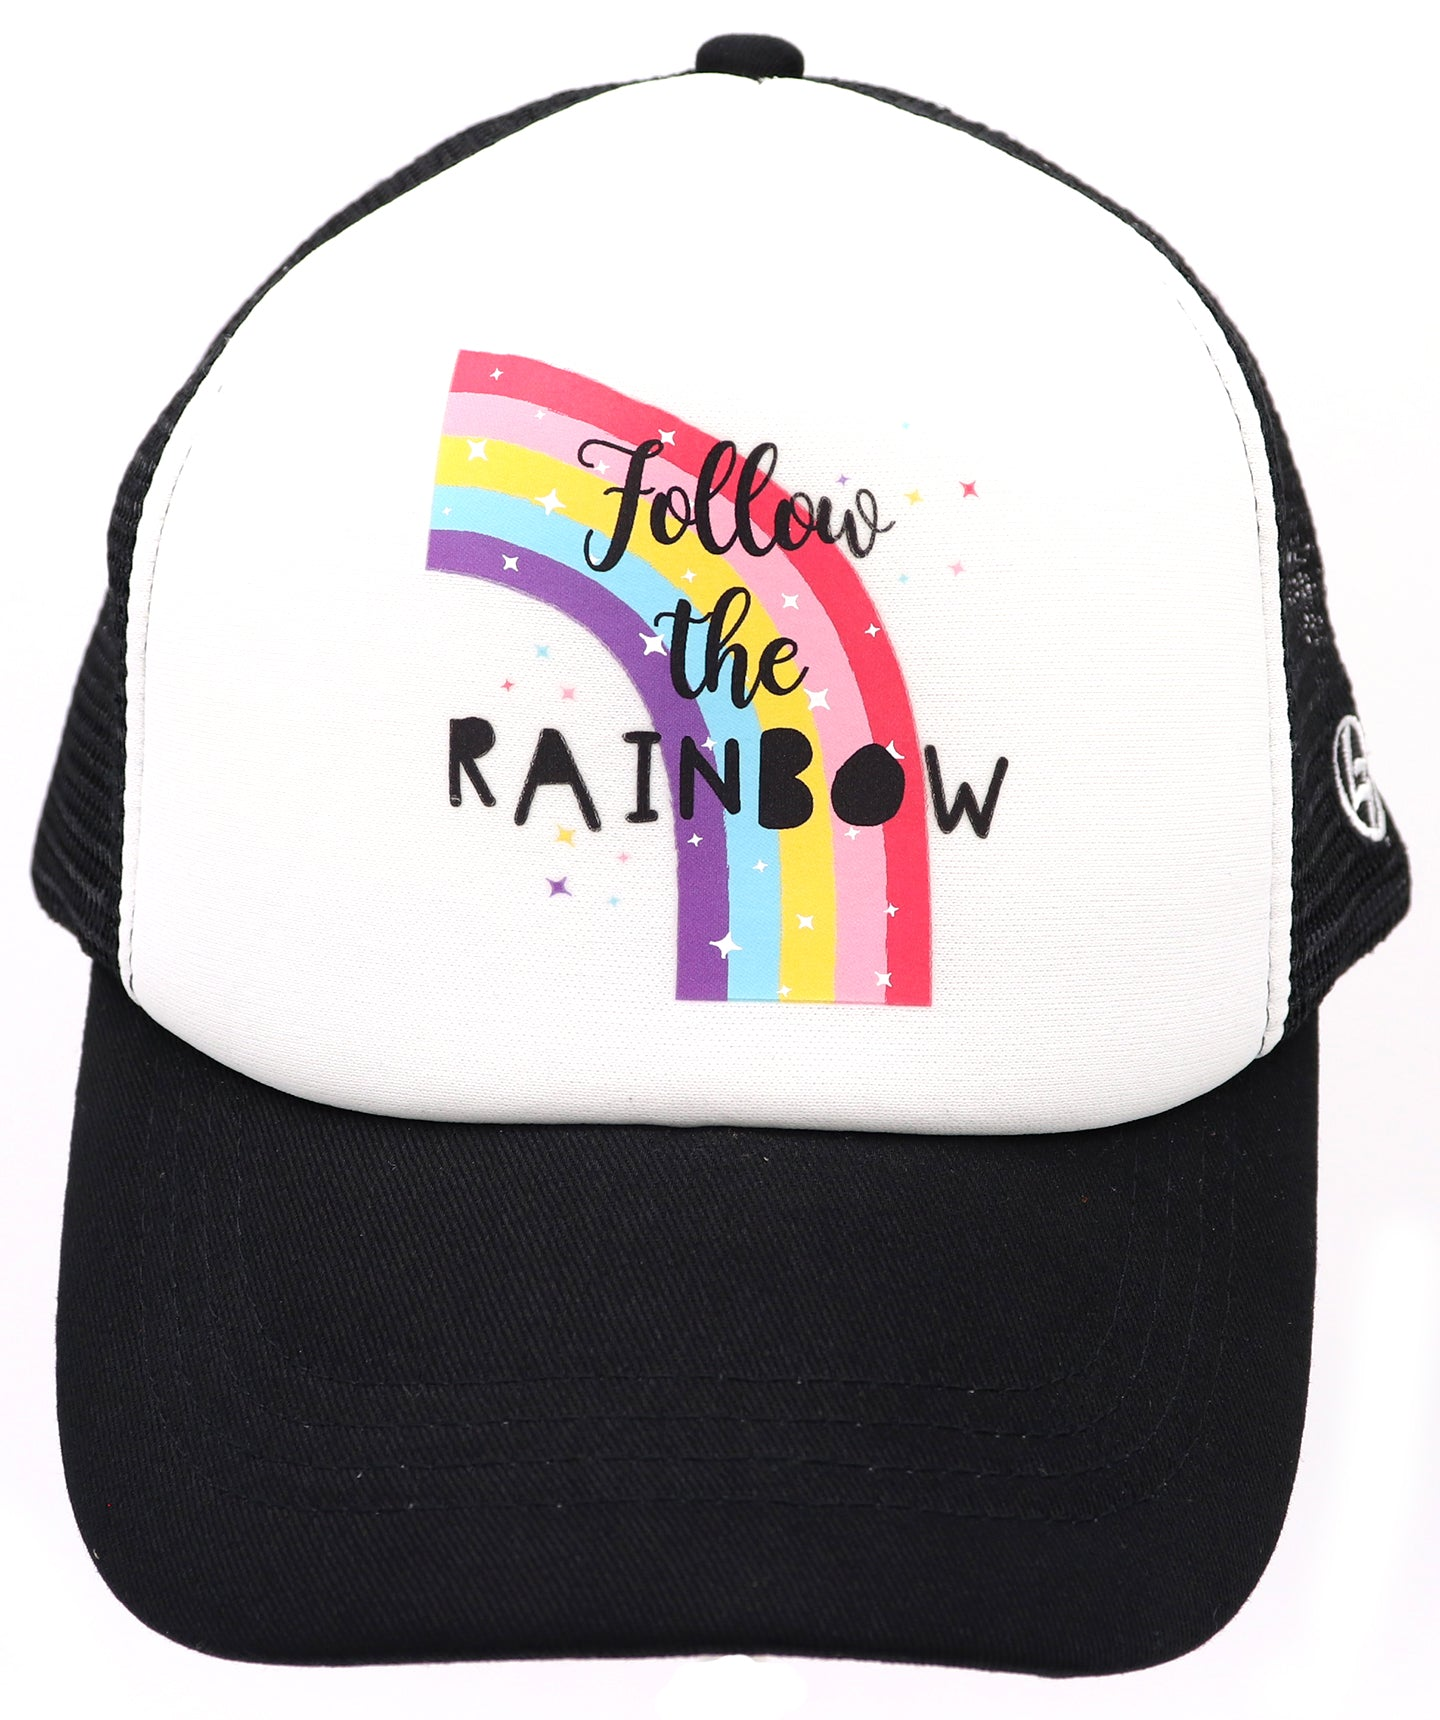 Follow the rainbow baseball hat with rainbow and sparkles printed on the front. Comfy trucker style mesh panels, foam front, and adjustable snapback. Made for children youth, boys, girls, and even toddler with snapback. Kids baseball hat Sold by SDtrading Co.